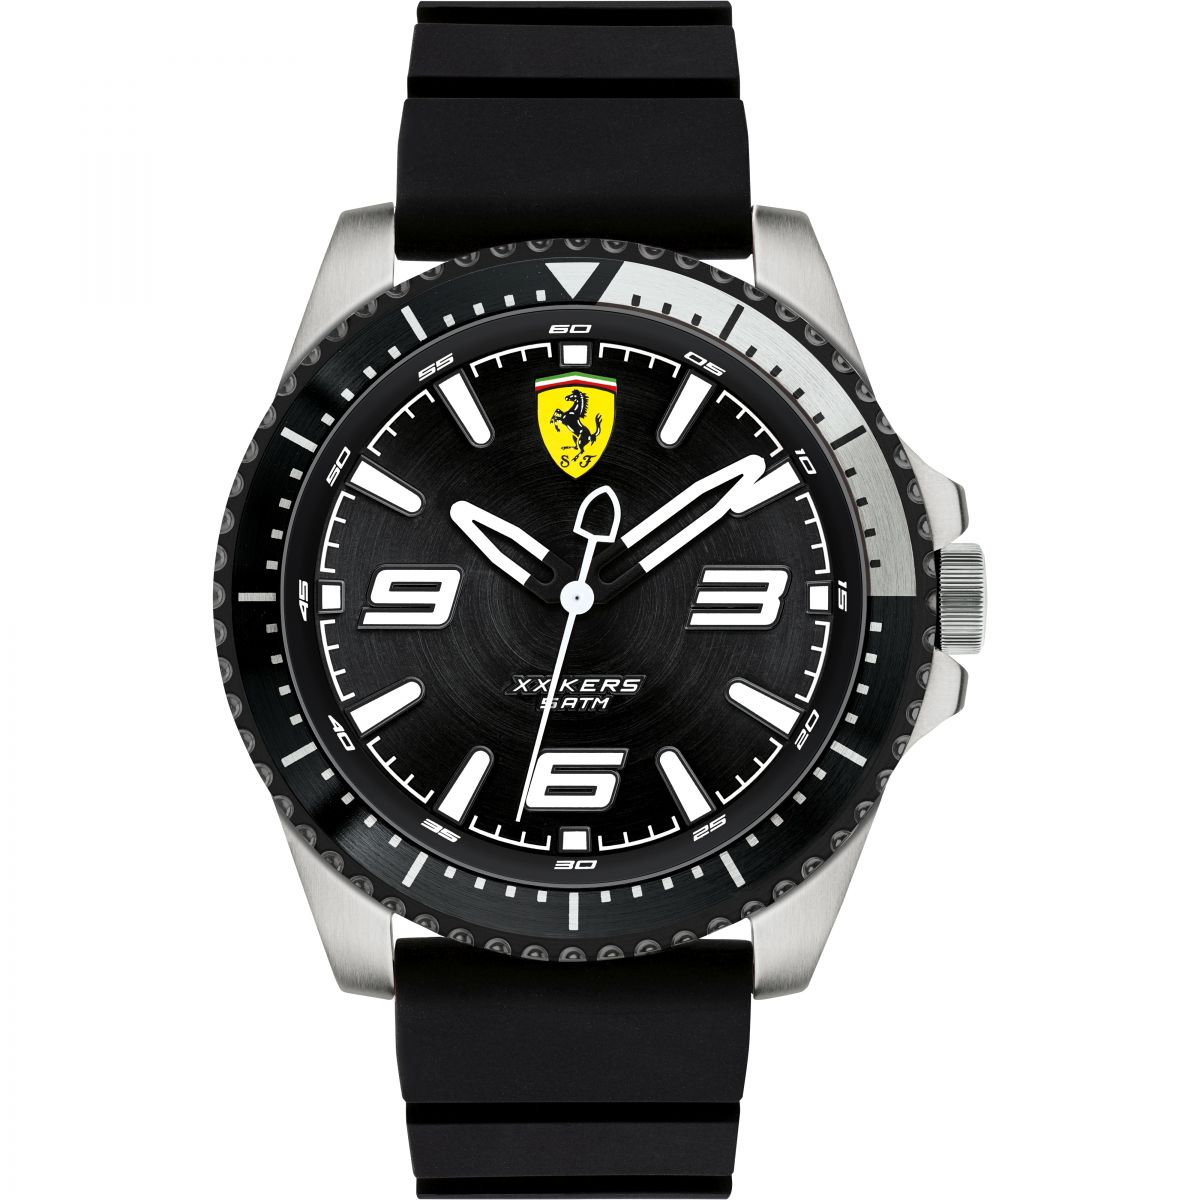 watchesmen nice s rattrapante images watches best wrist luxury granturismo panerai watch on pinterest ferrari officine